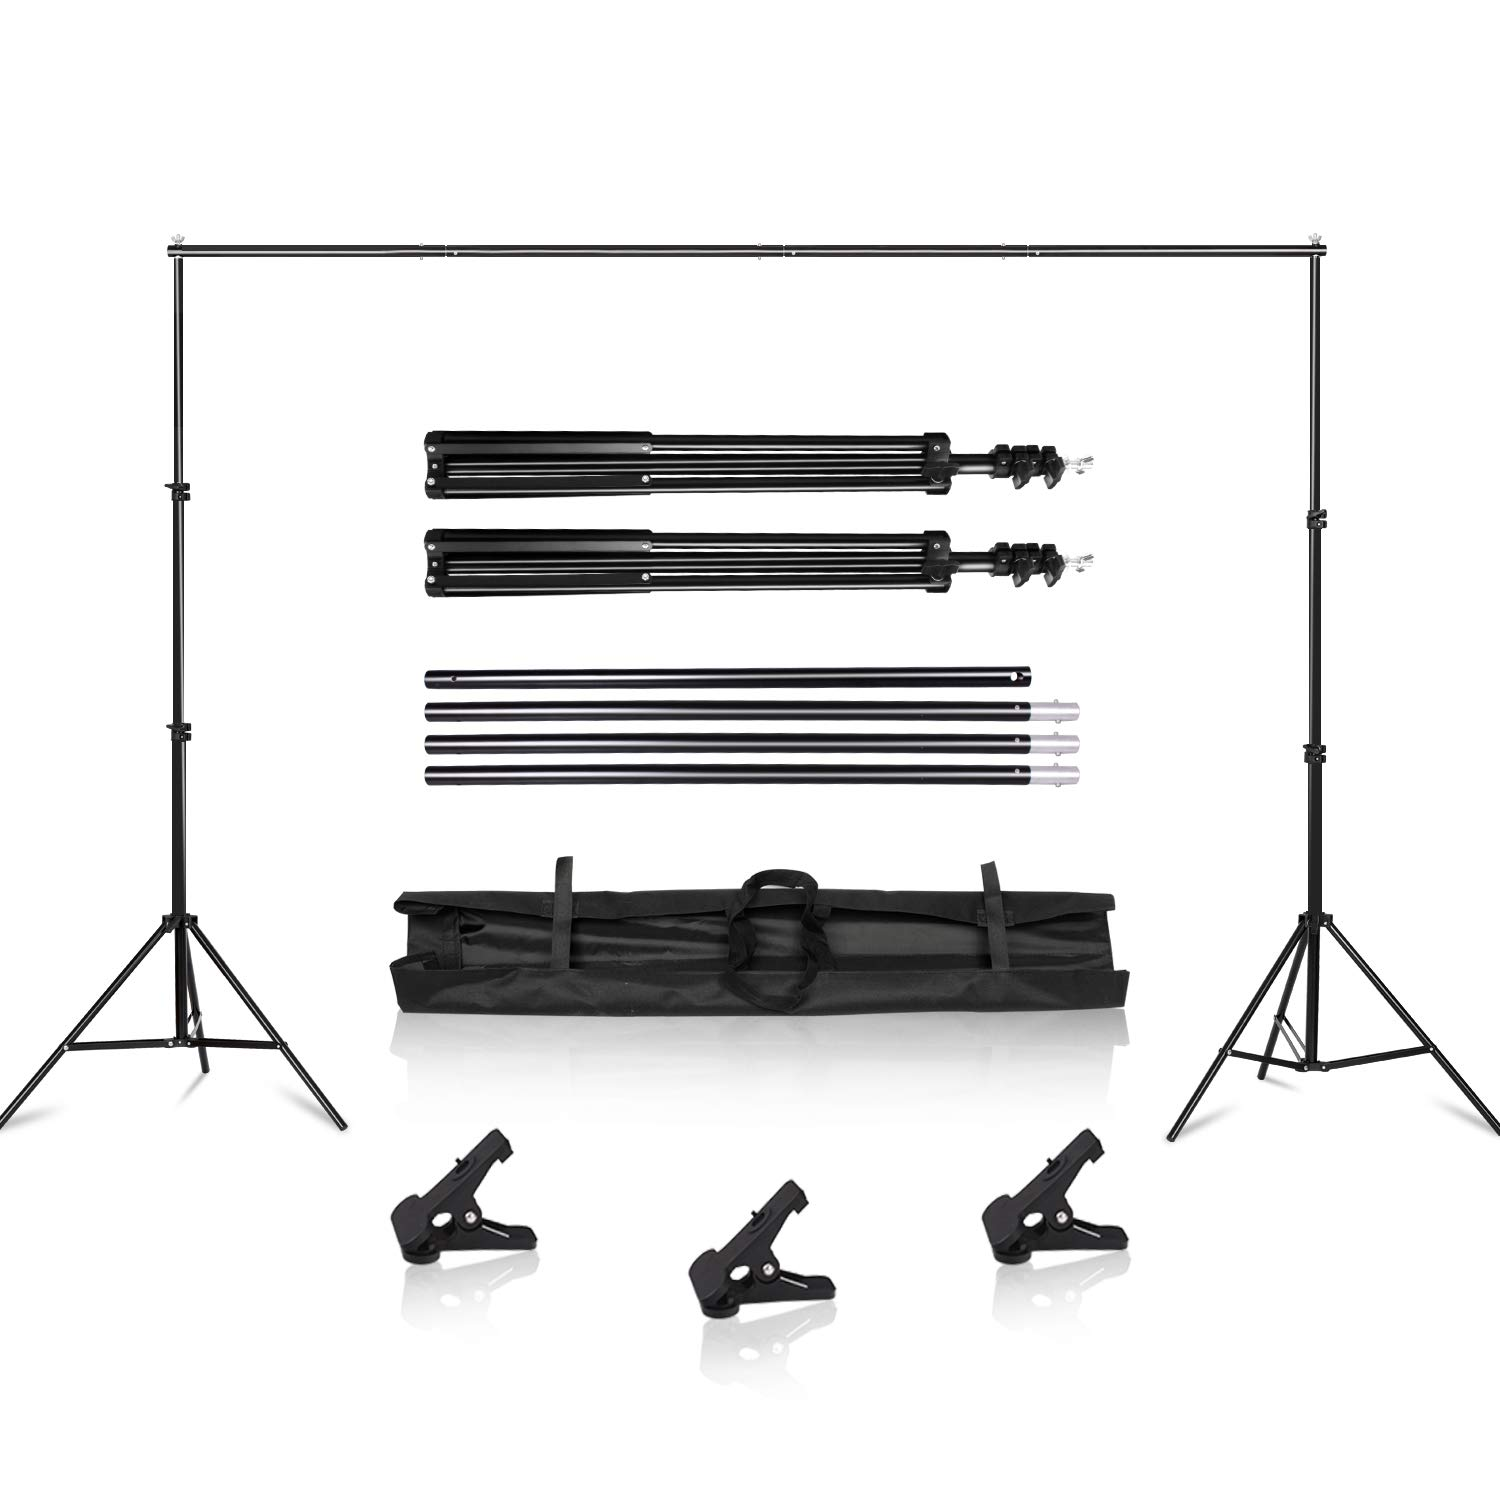 SH Background Stand, 6.5 x 10FT Heavy Duty Background Stand, 2x3M Backdrop Support System Kit with Carry Bag for Photography Photo Video Studio,Photography Studio by SH (Image #1)